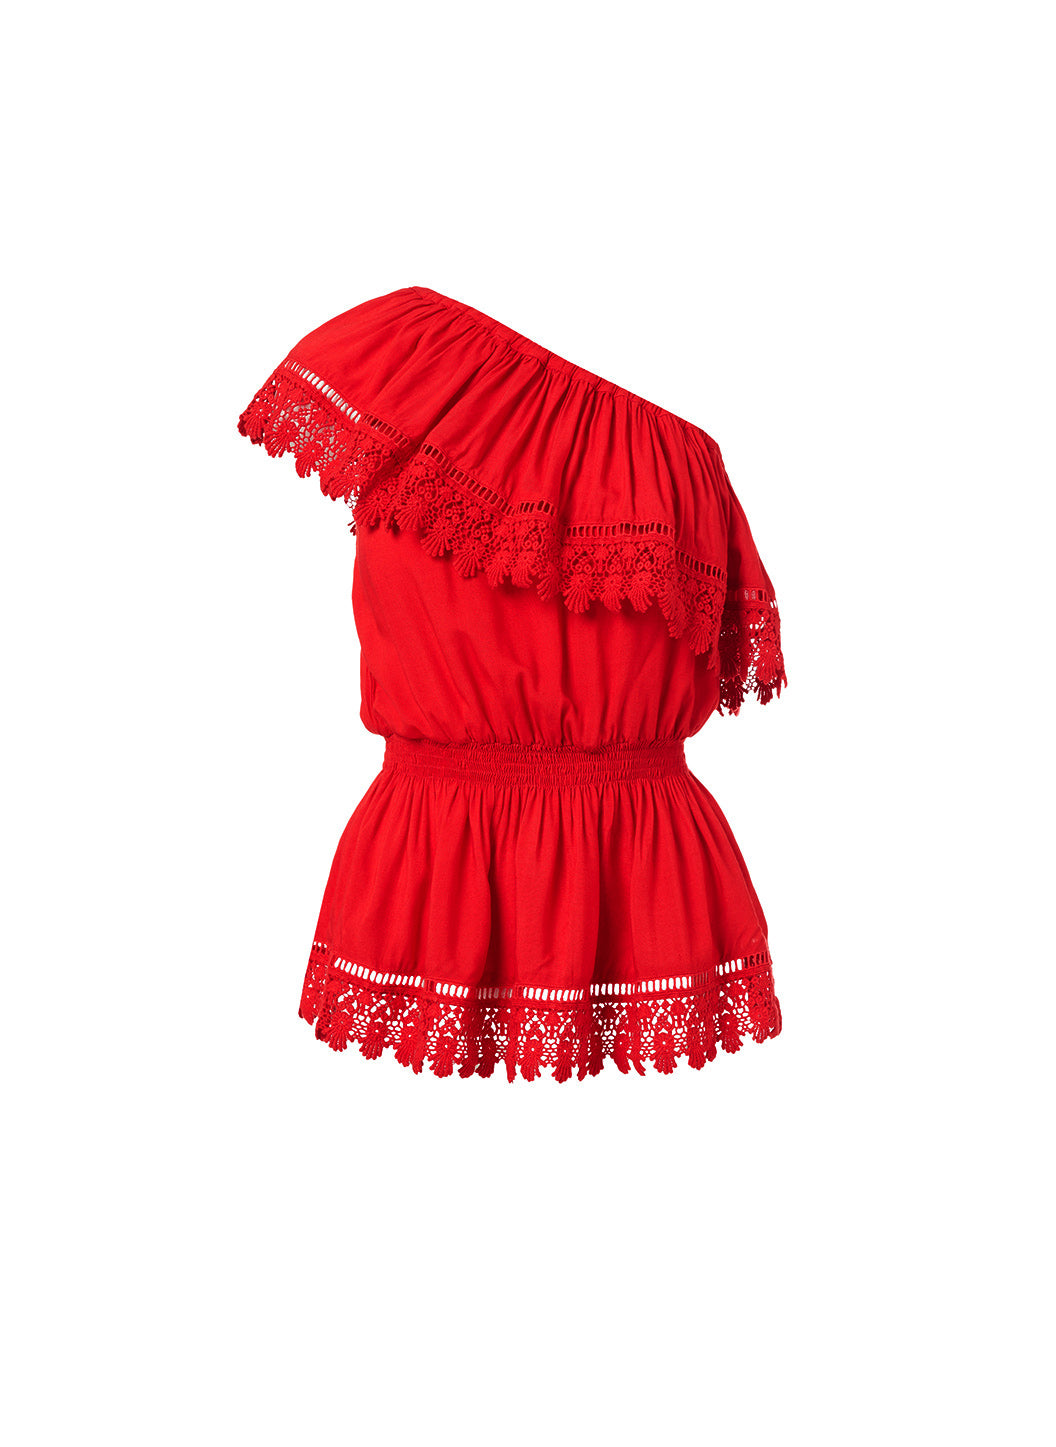 Joanna Red One Shoulder Embroidered Frill Top - Melissa Odabash Beachwear